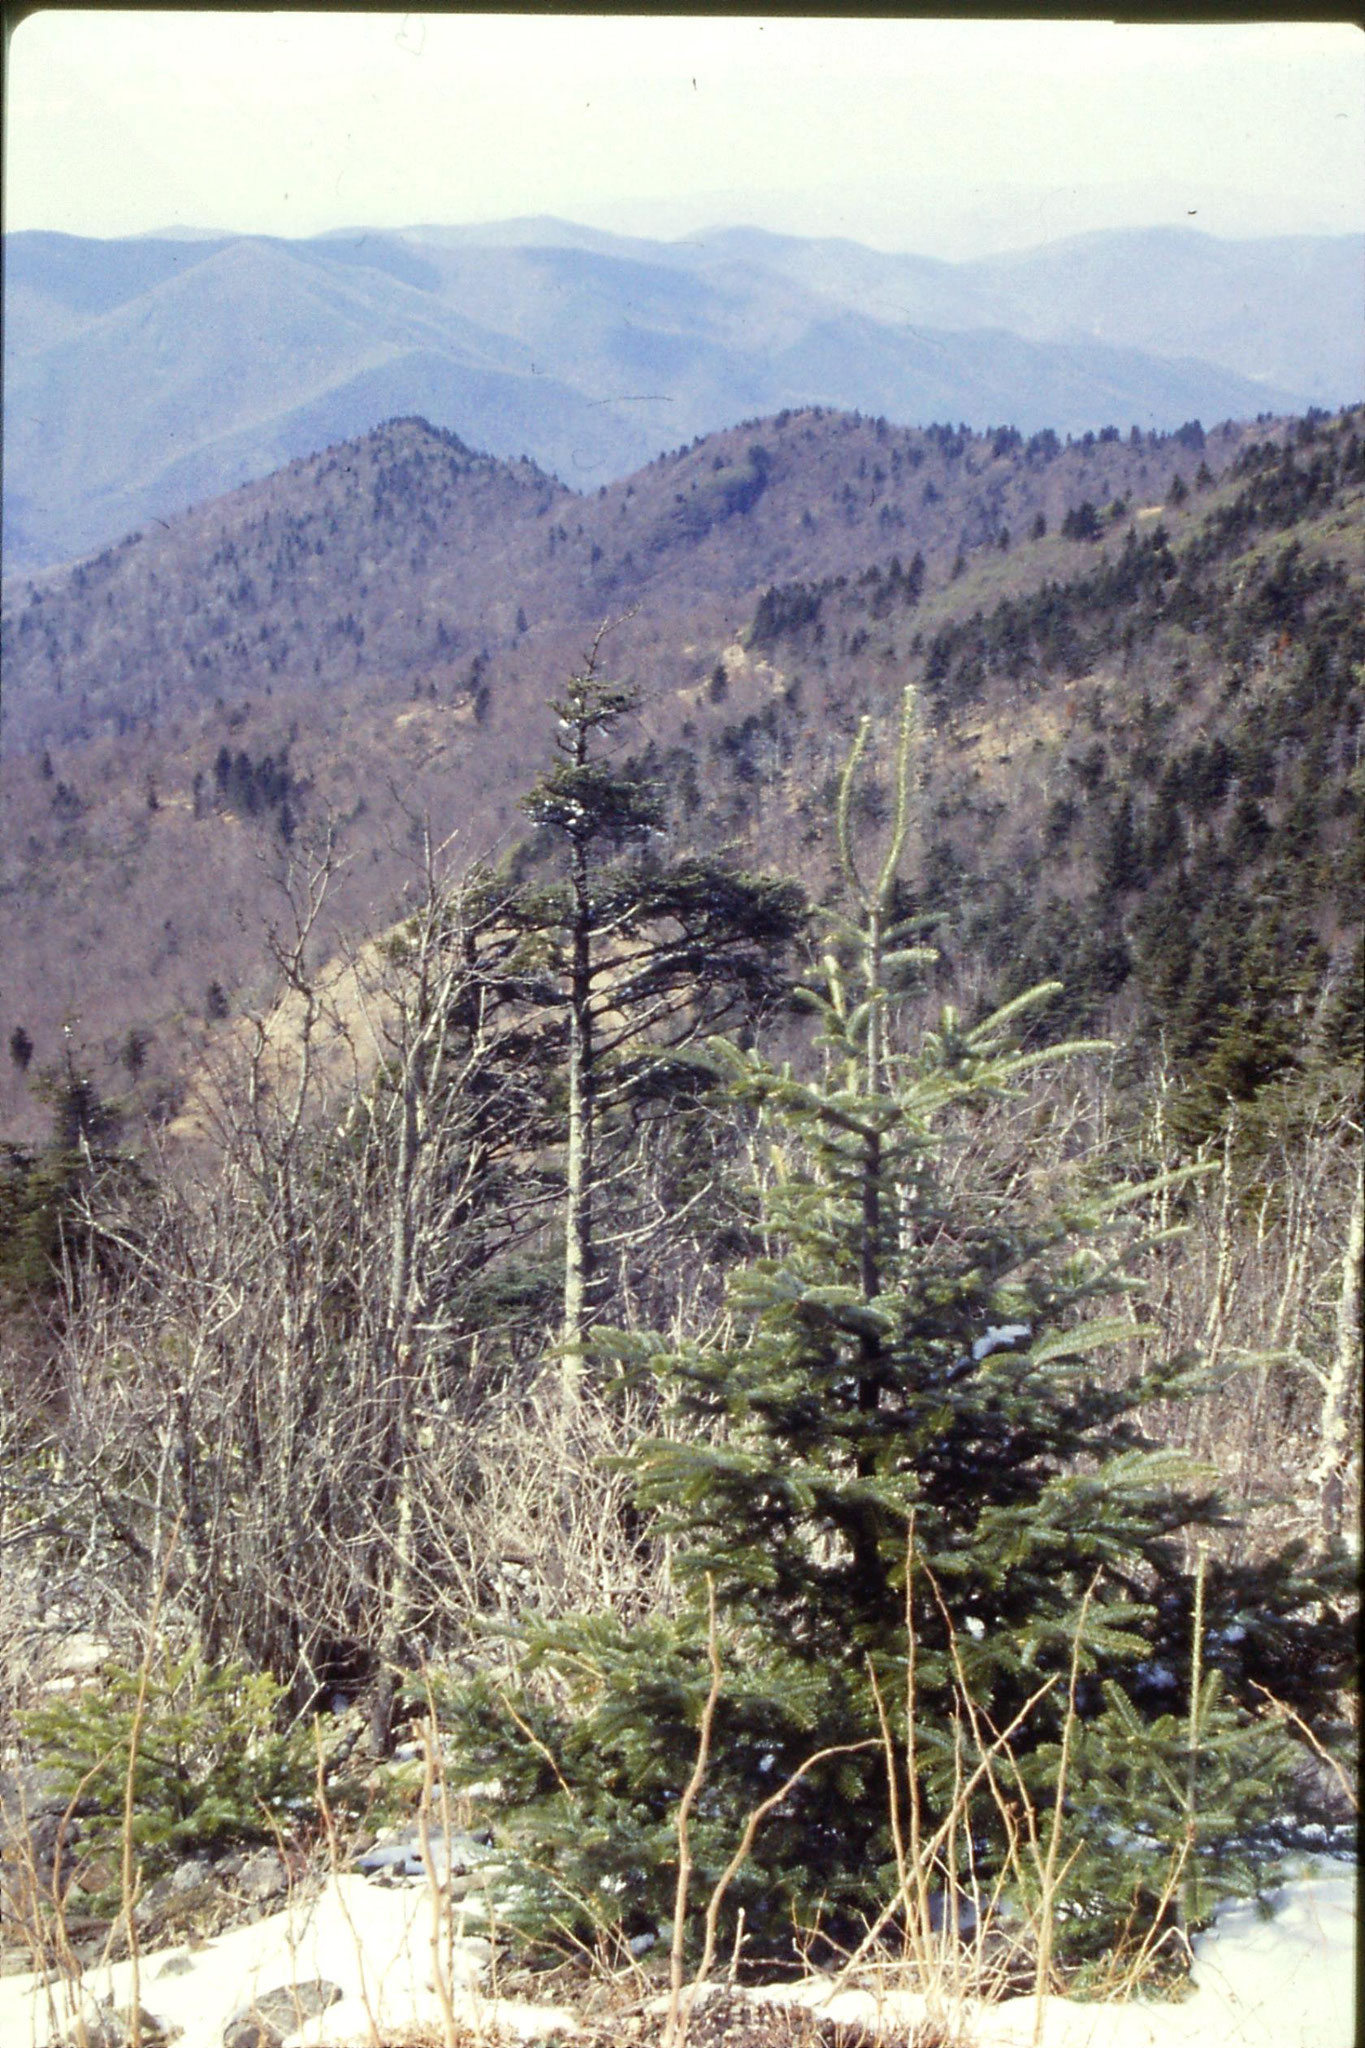 16/3/1991: 20: Road to Mt Mitchell N.C. looking NE towards Black Mountains